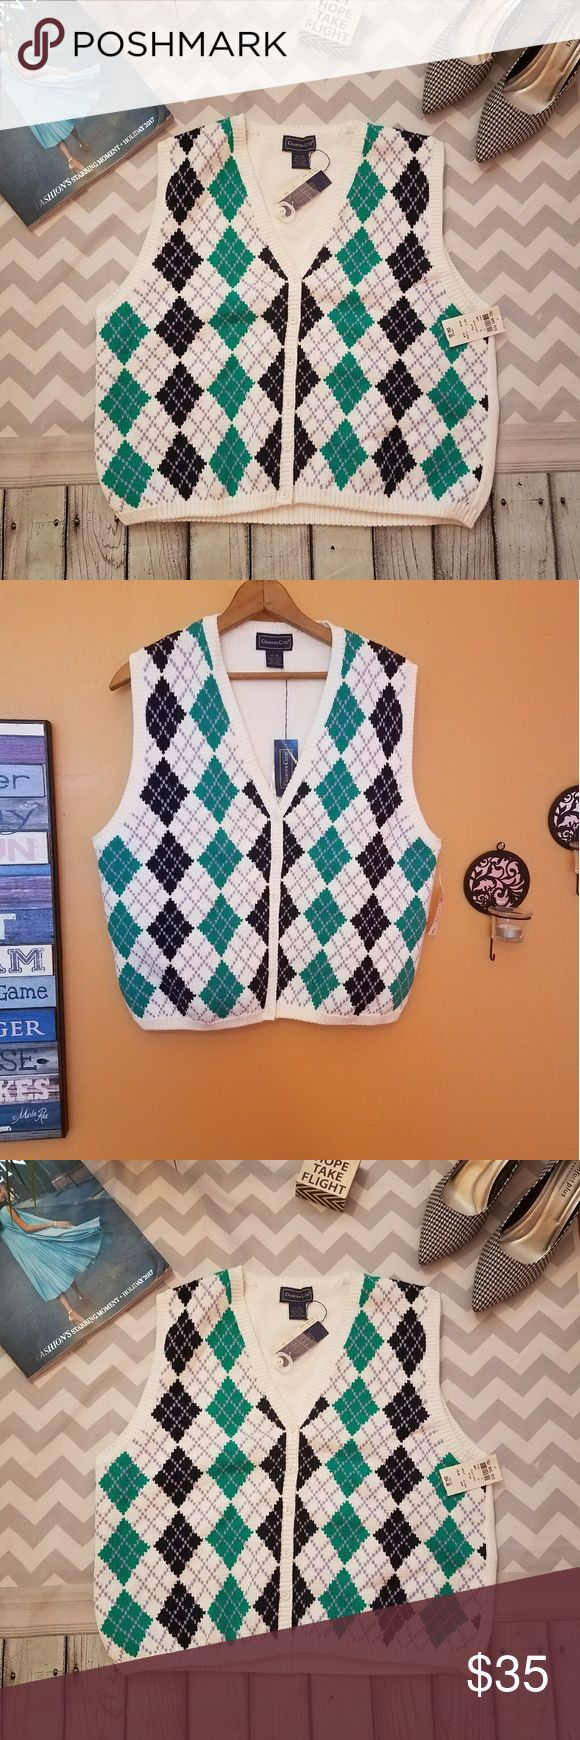 NWT CharterClub argyle knitted cotton sweater vest ✔New with tag Charter Club argyle knitted cotton sweater vest ✔Super adorable and cute ✔Looks great with black mini skirt or legging ✔Green black purple & white argyle vest ✔100% cotton 👌 ✔Style number 8404 ✔Size Xl ✔Please see the picture for Measurements Charter Club Jackets & Coats Vests